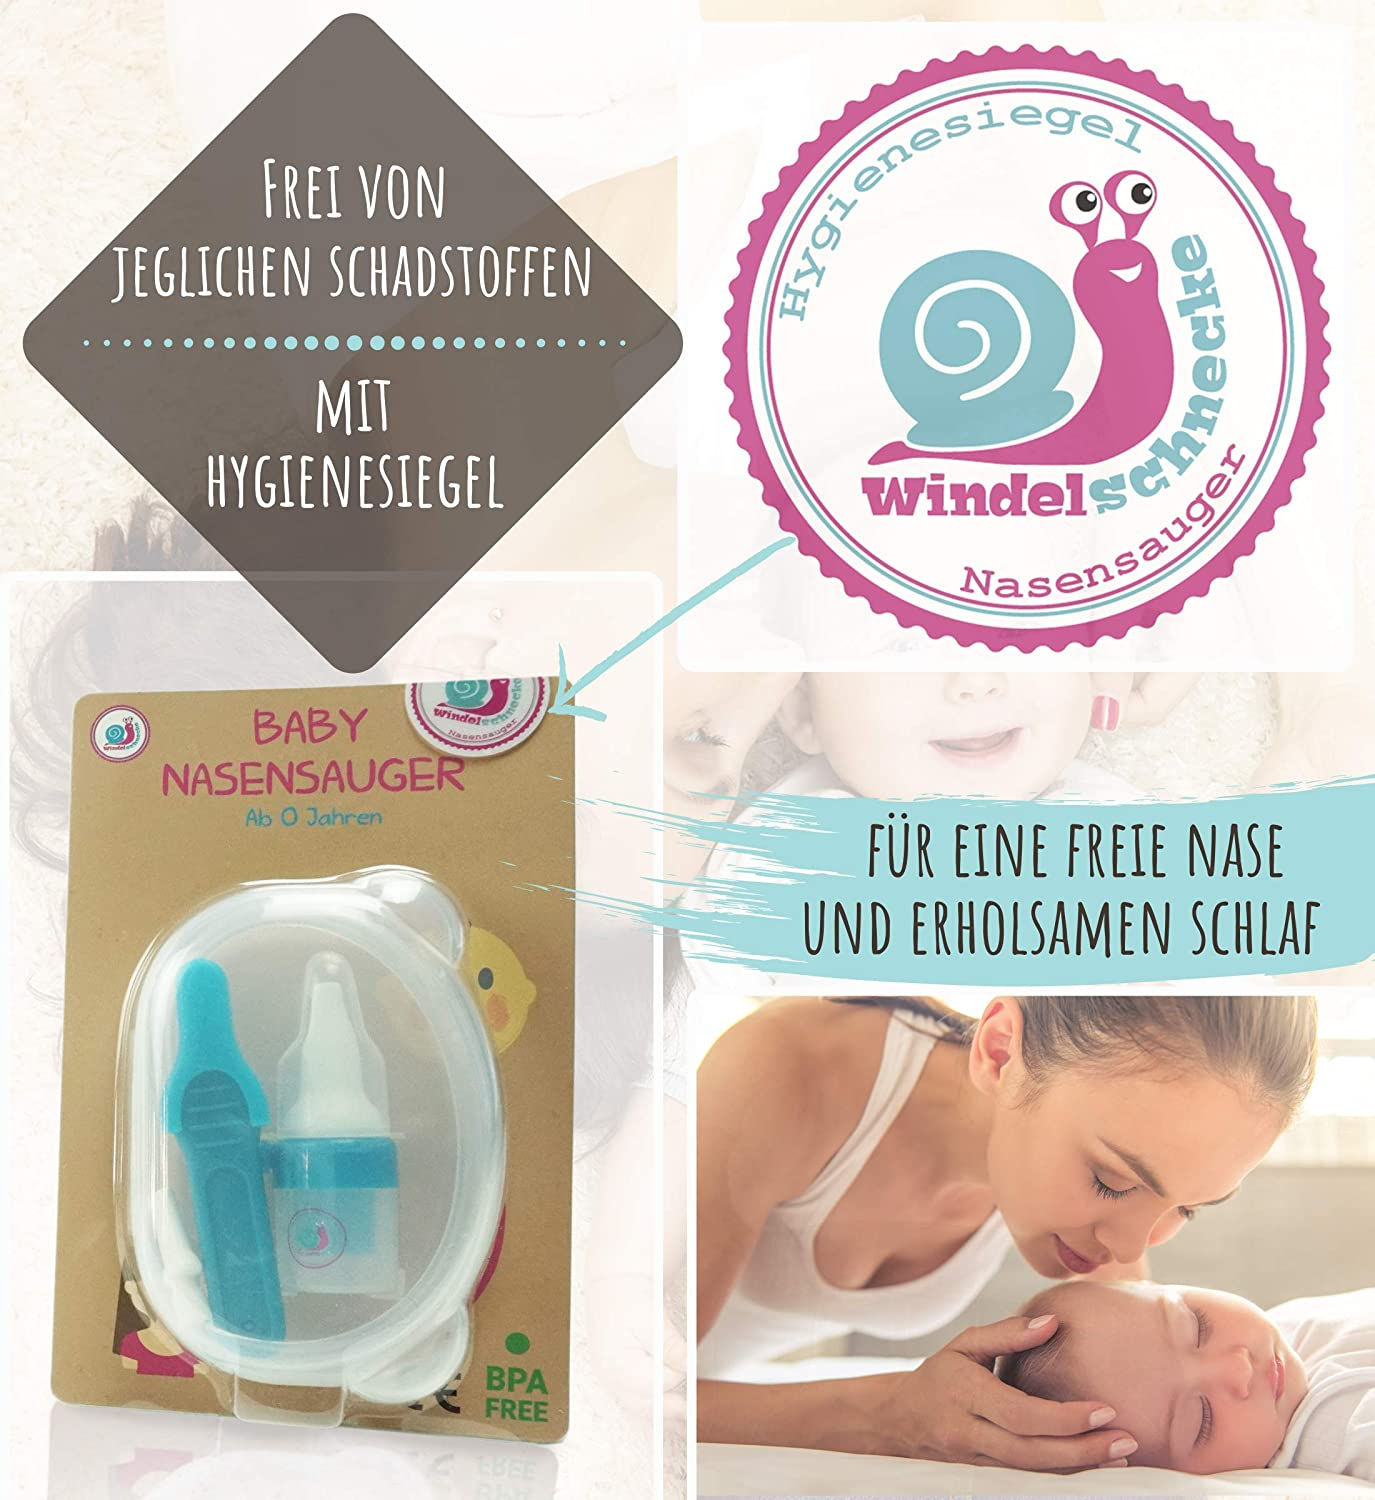 Gentle Silicone German Brand Recommended by Midwives. Nose Ears Tweezers for Small Children Nasal Aspirator Test Winner for Babies Newborns and Toddlers Nasal Aspirator